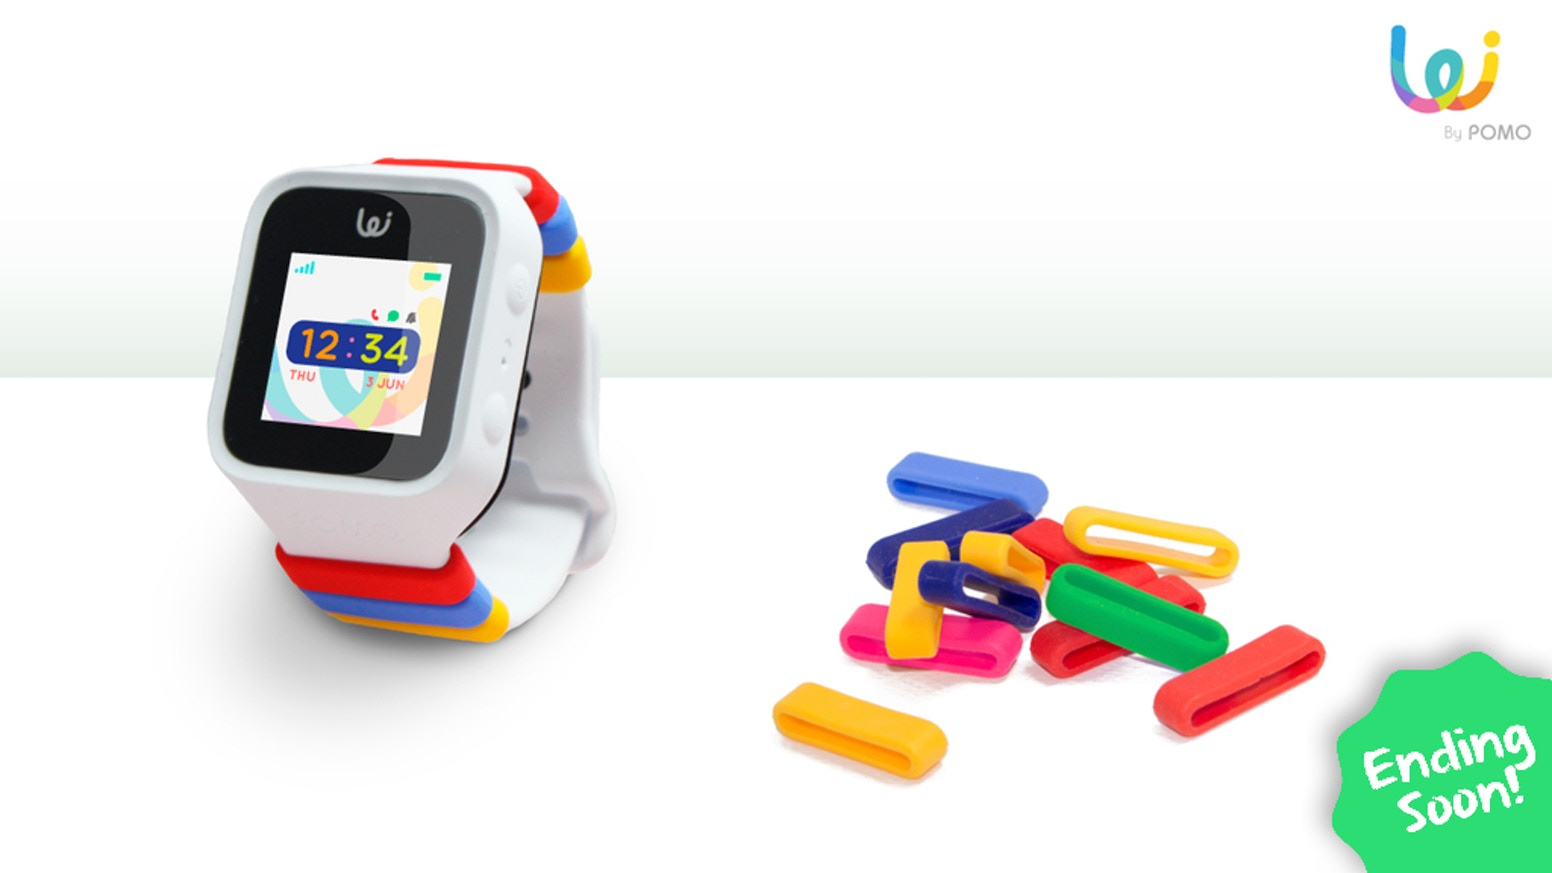 A smartwatch that not only develops creativity and responsibility in kids, it also helps build up their independence.